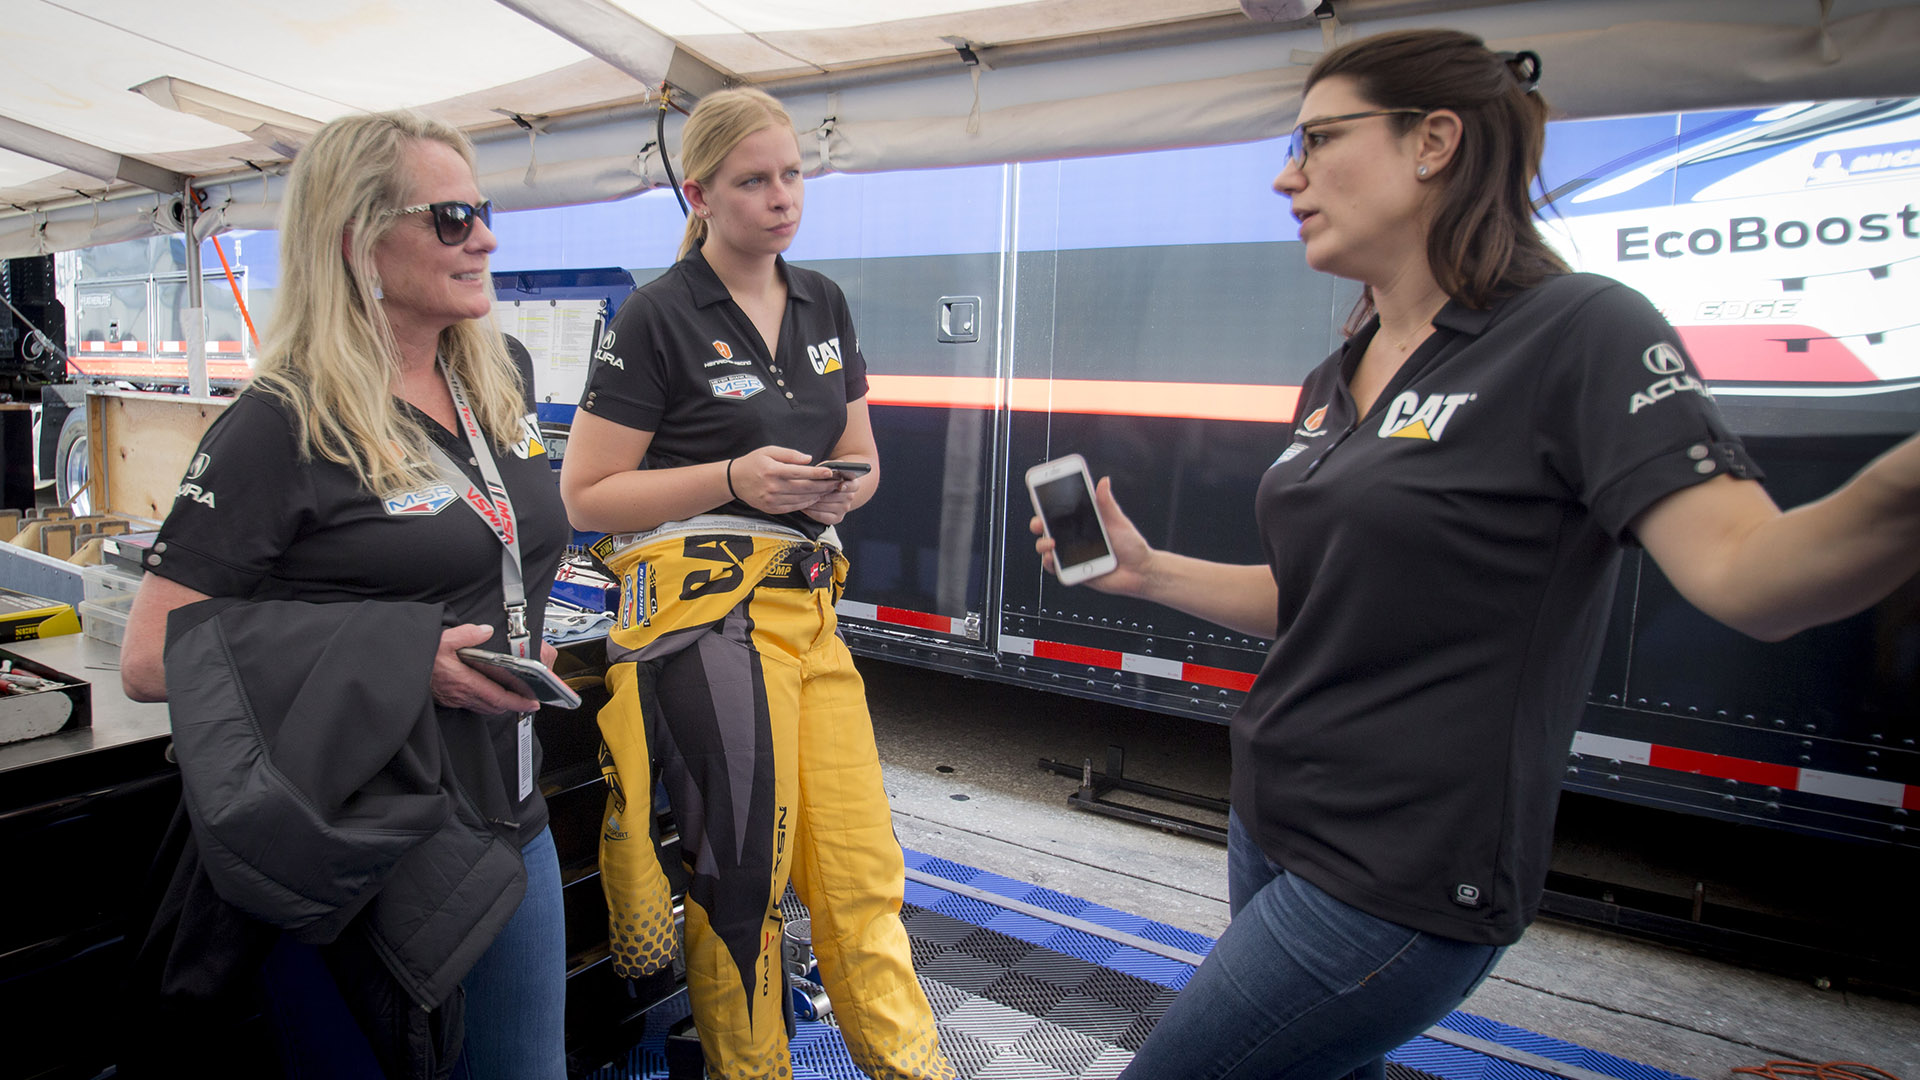 IMSA: Jackie Heinricher blazing a trail on and off the race track